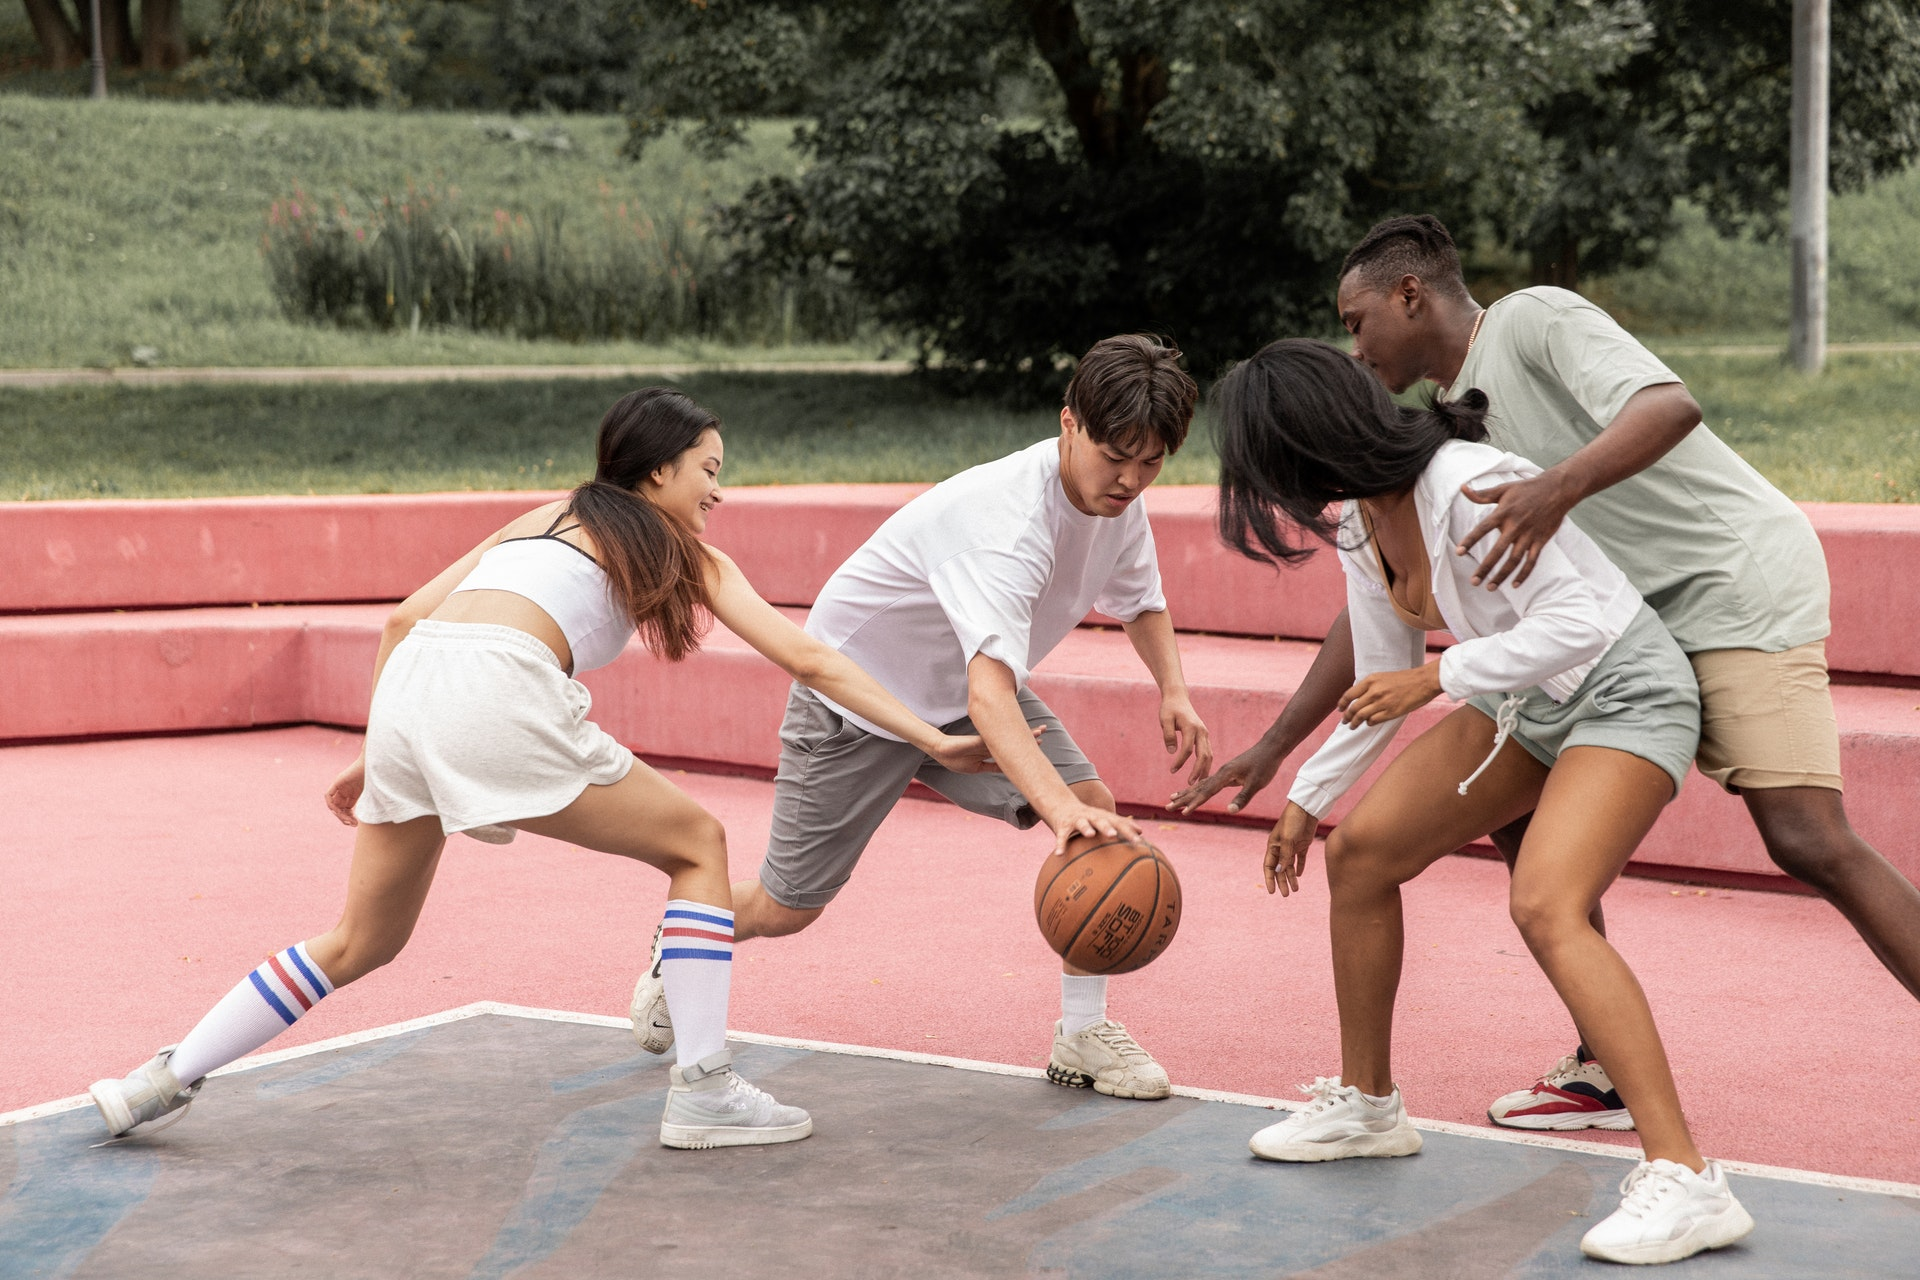 a diverse young people play sport